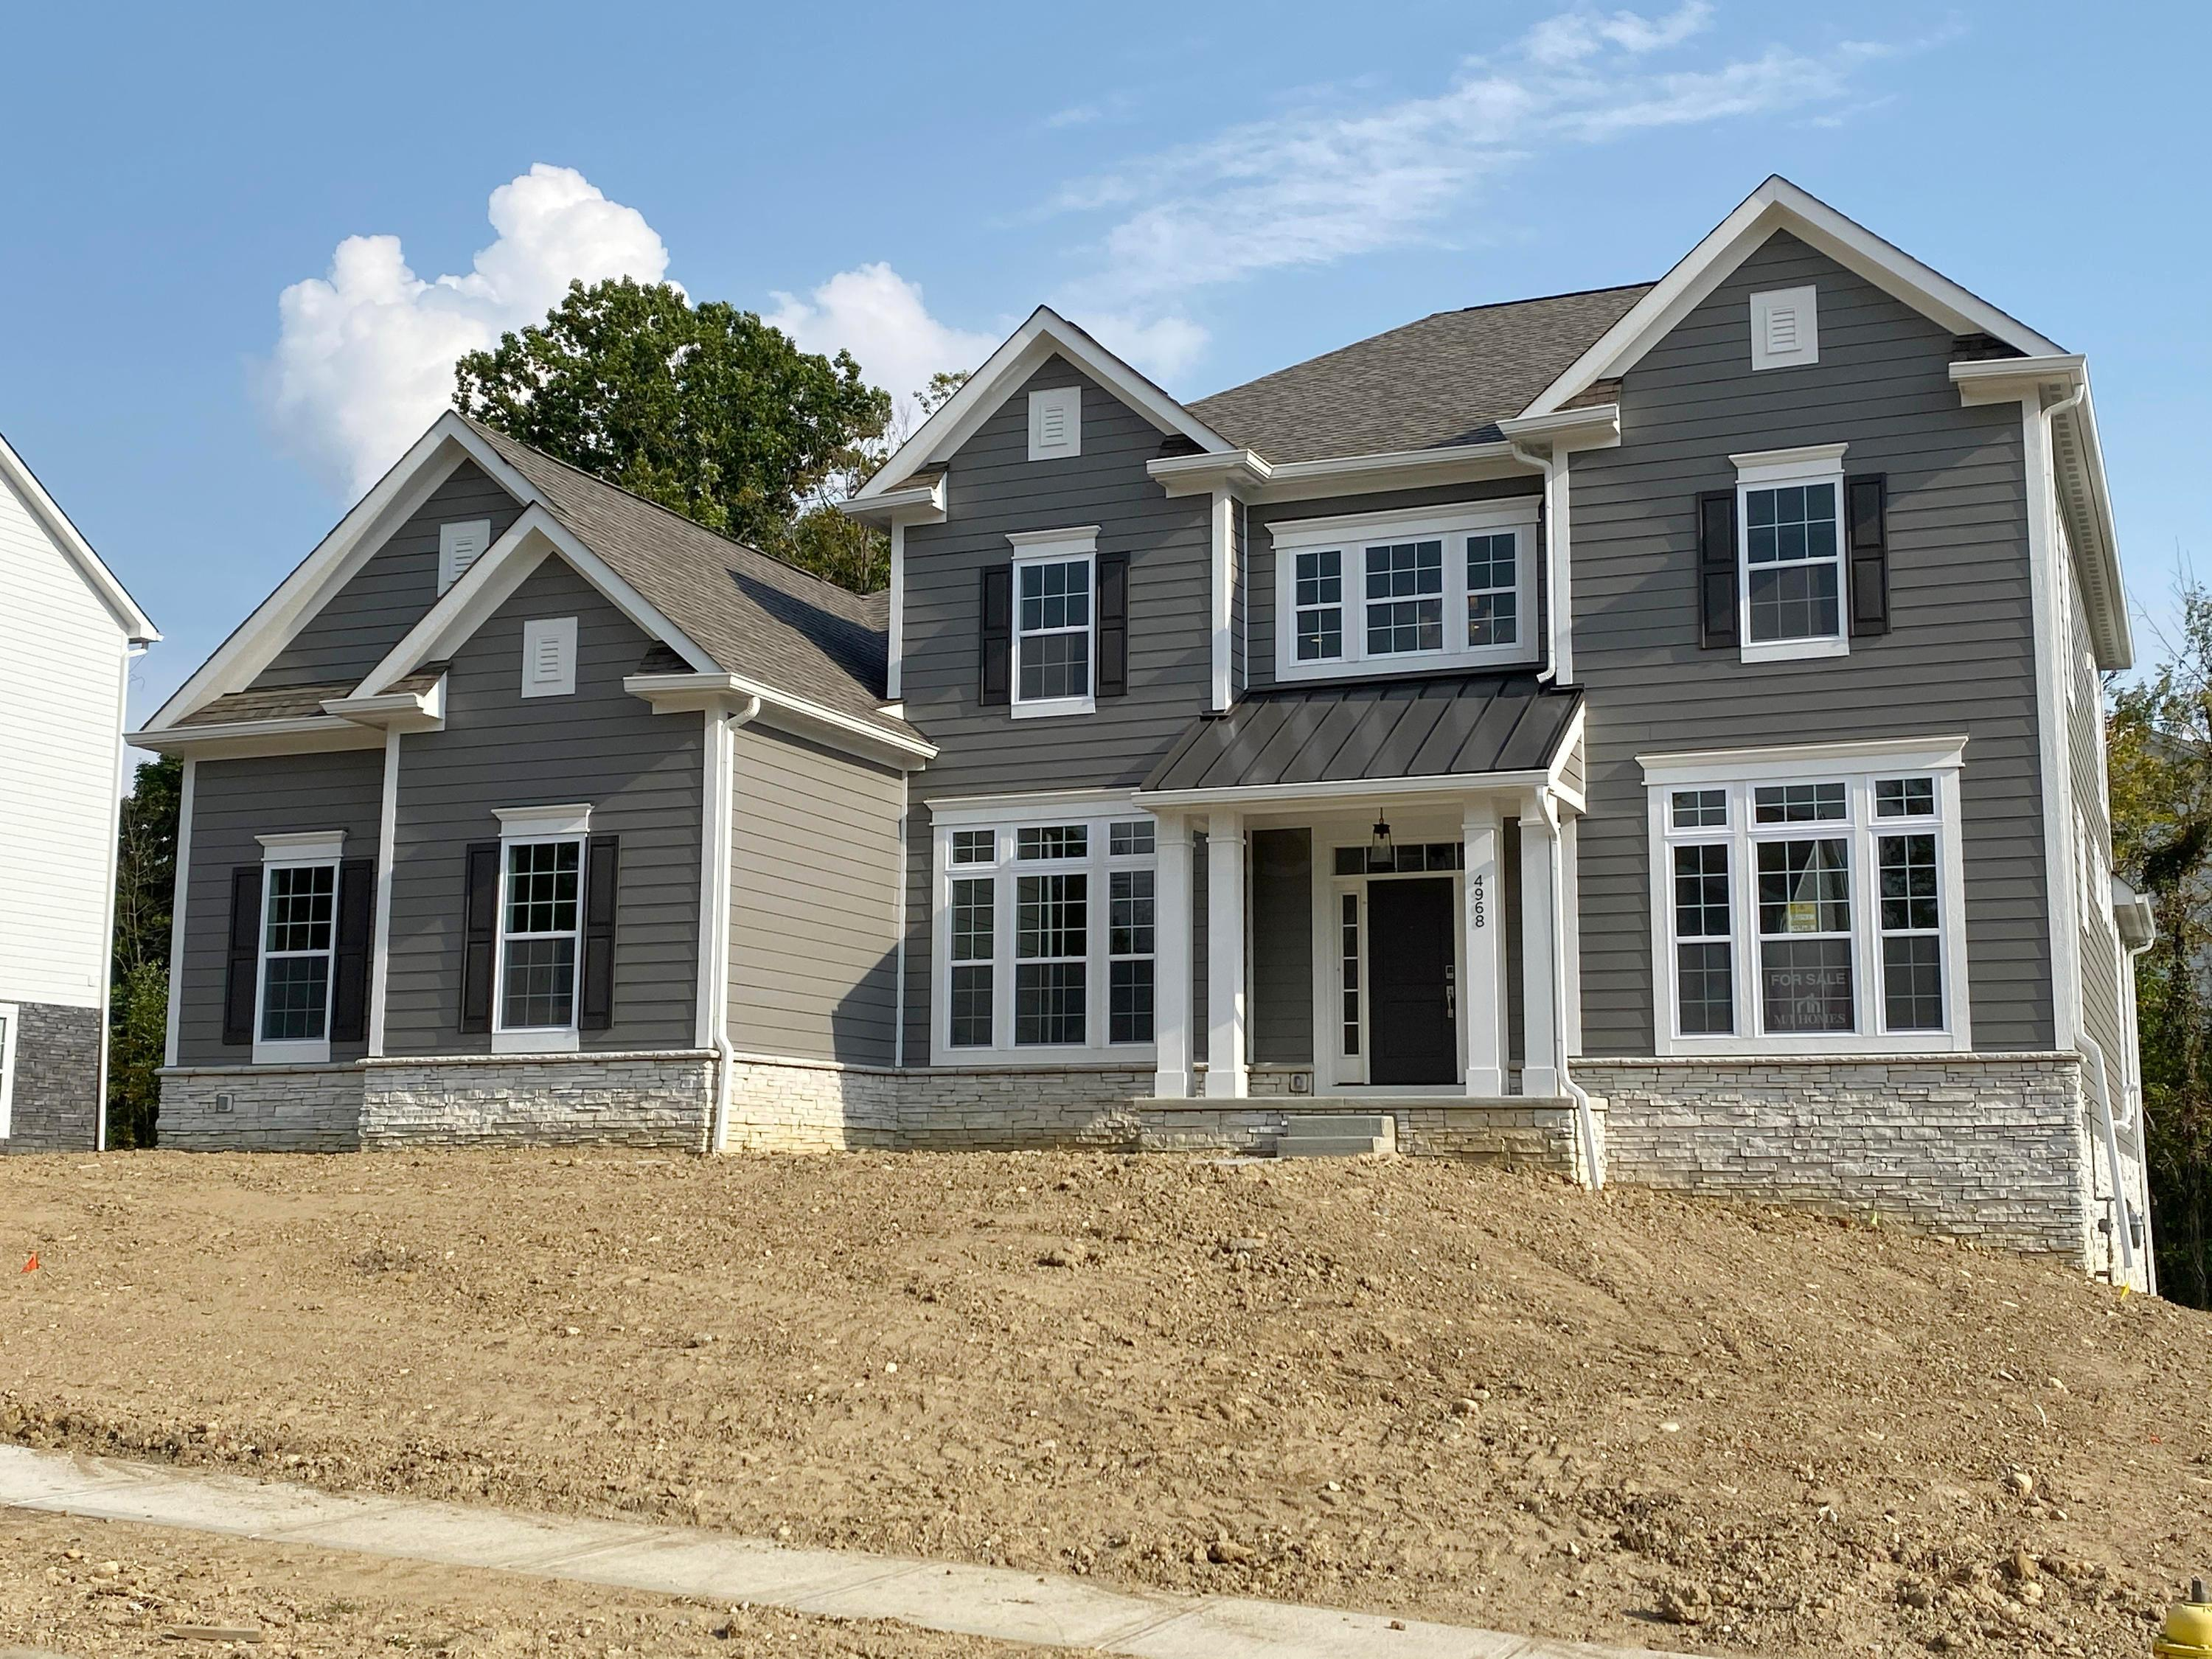 Photo of 4968 Tralee Lane, Westerville, OH 43082